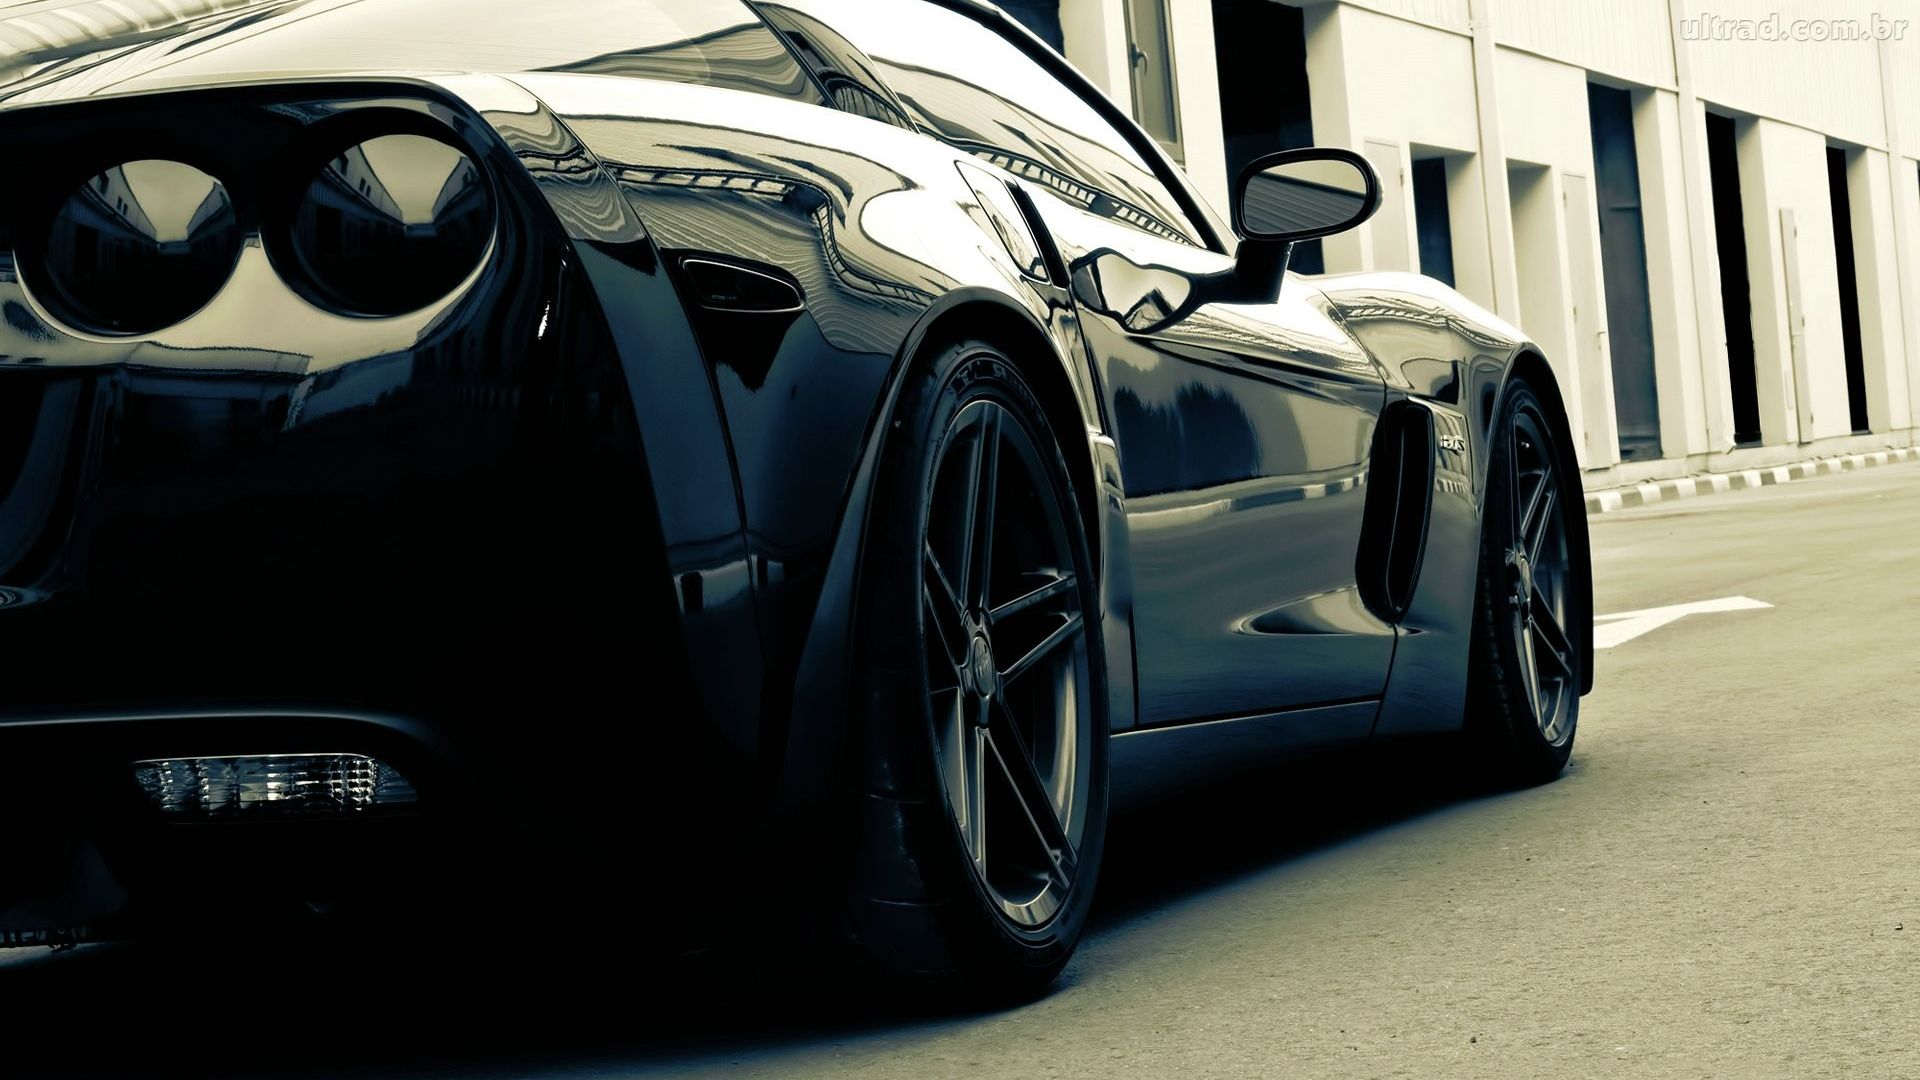 Sport Cars Wallpaper Hd 63 Images: Wallpapers